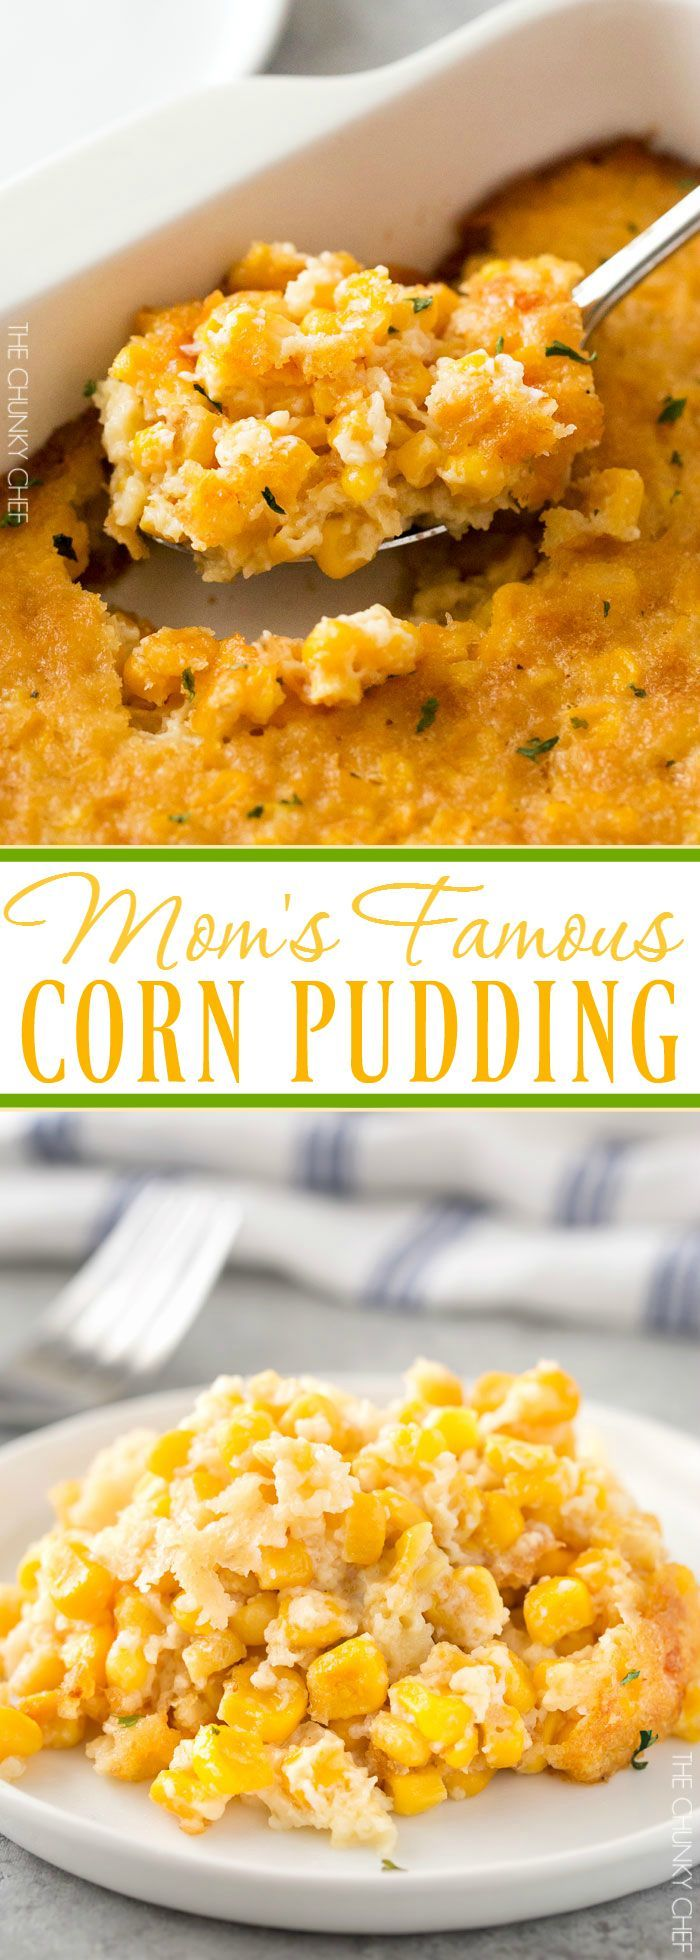 Mom's Famous Corn Pudding | Family favorite corn pudding that uses everyday staple ingredients and doesn't require a mixer! | http://thechunkychef.com